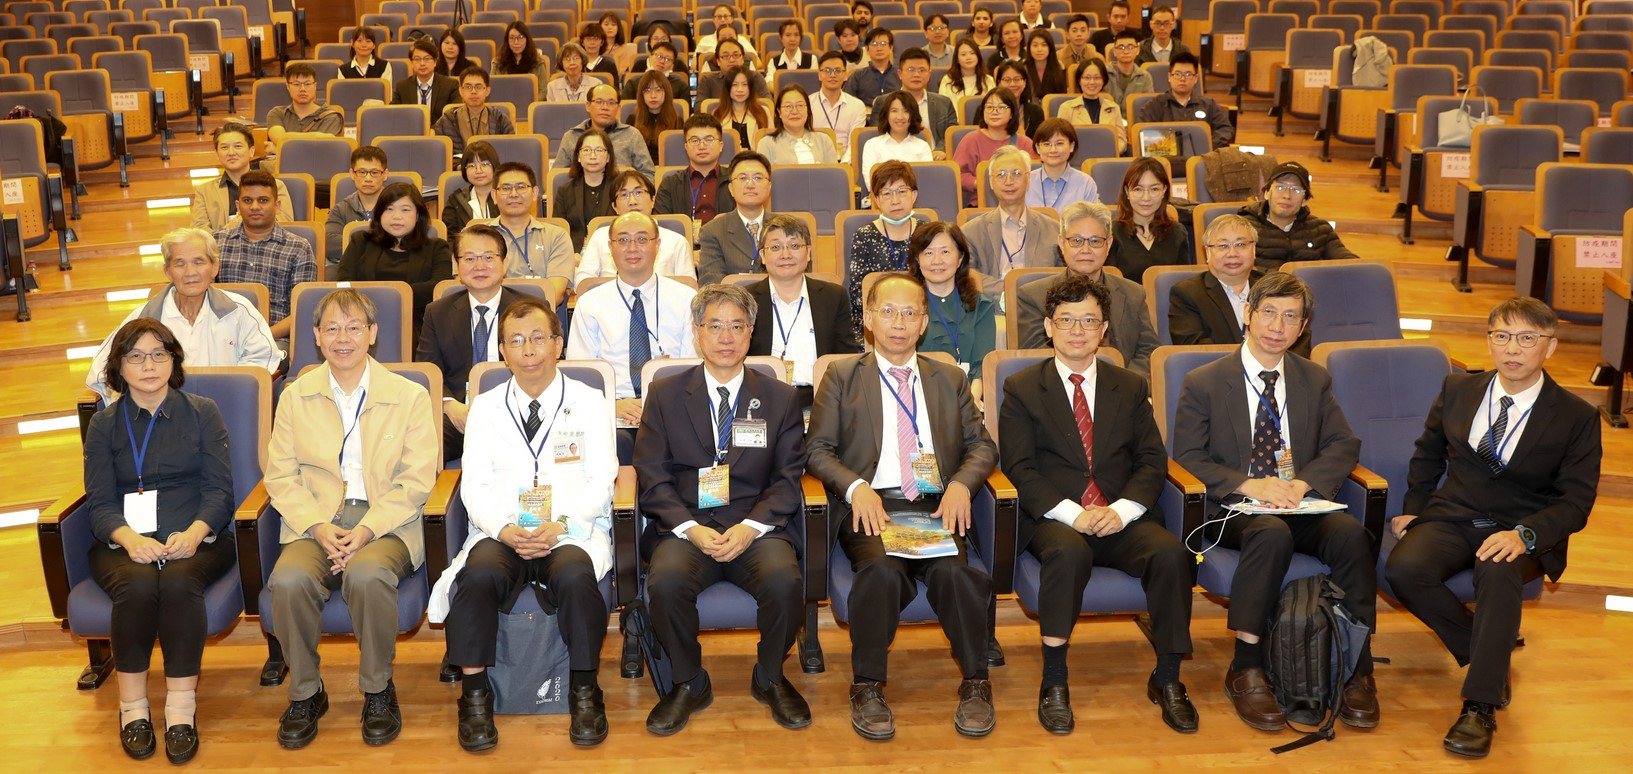 _2020_Annual_Meeting_of_Taiwan_Society_for_Mitochondrial_Research_and_Medicine_TSMRM_Diagnosis_and_Prevention_of_Hereditary_and_Metabolic_Diseases